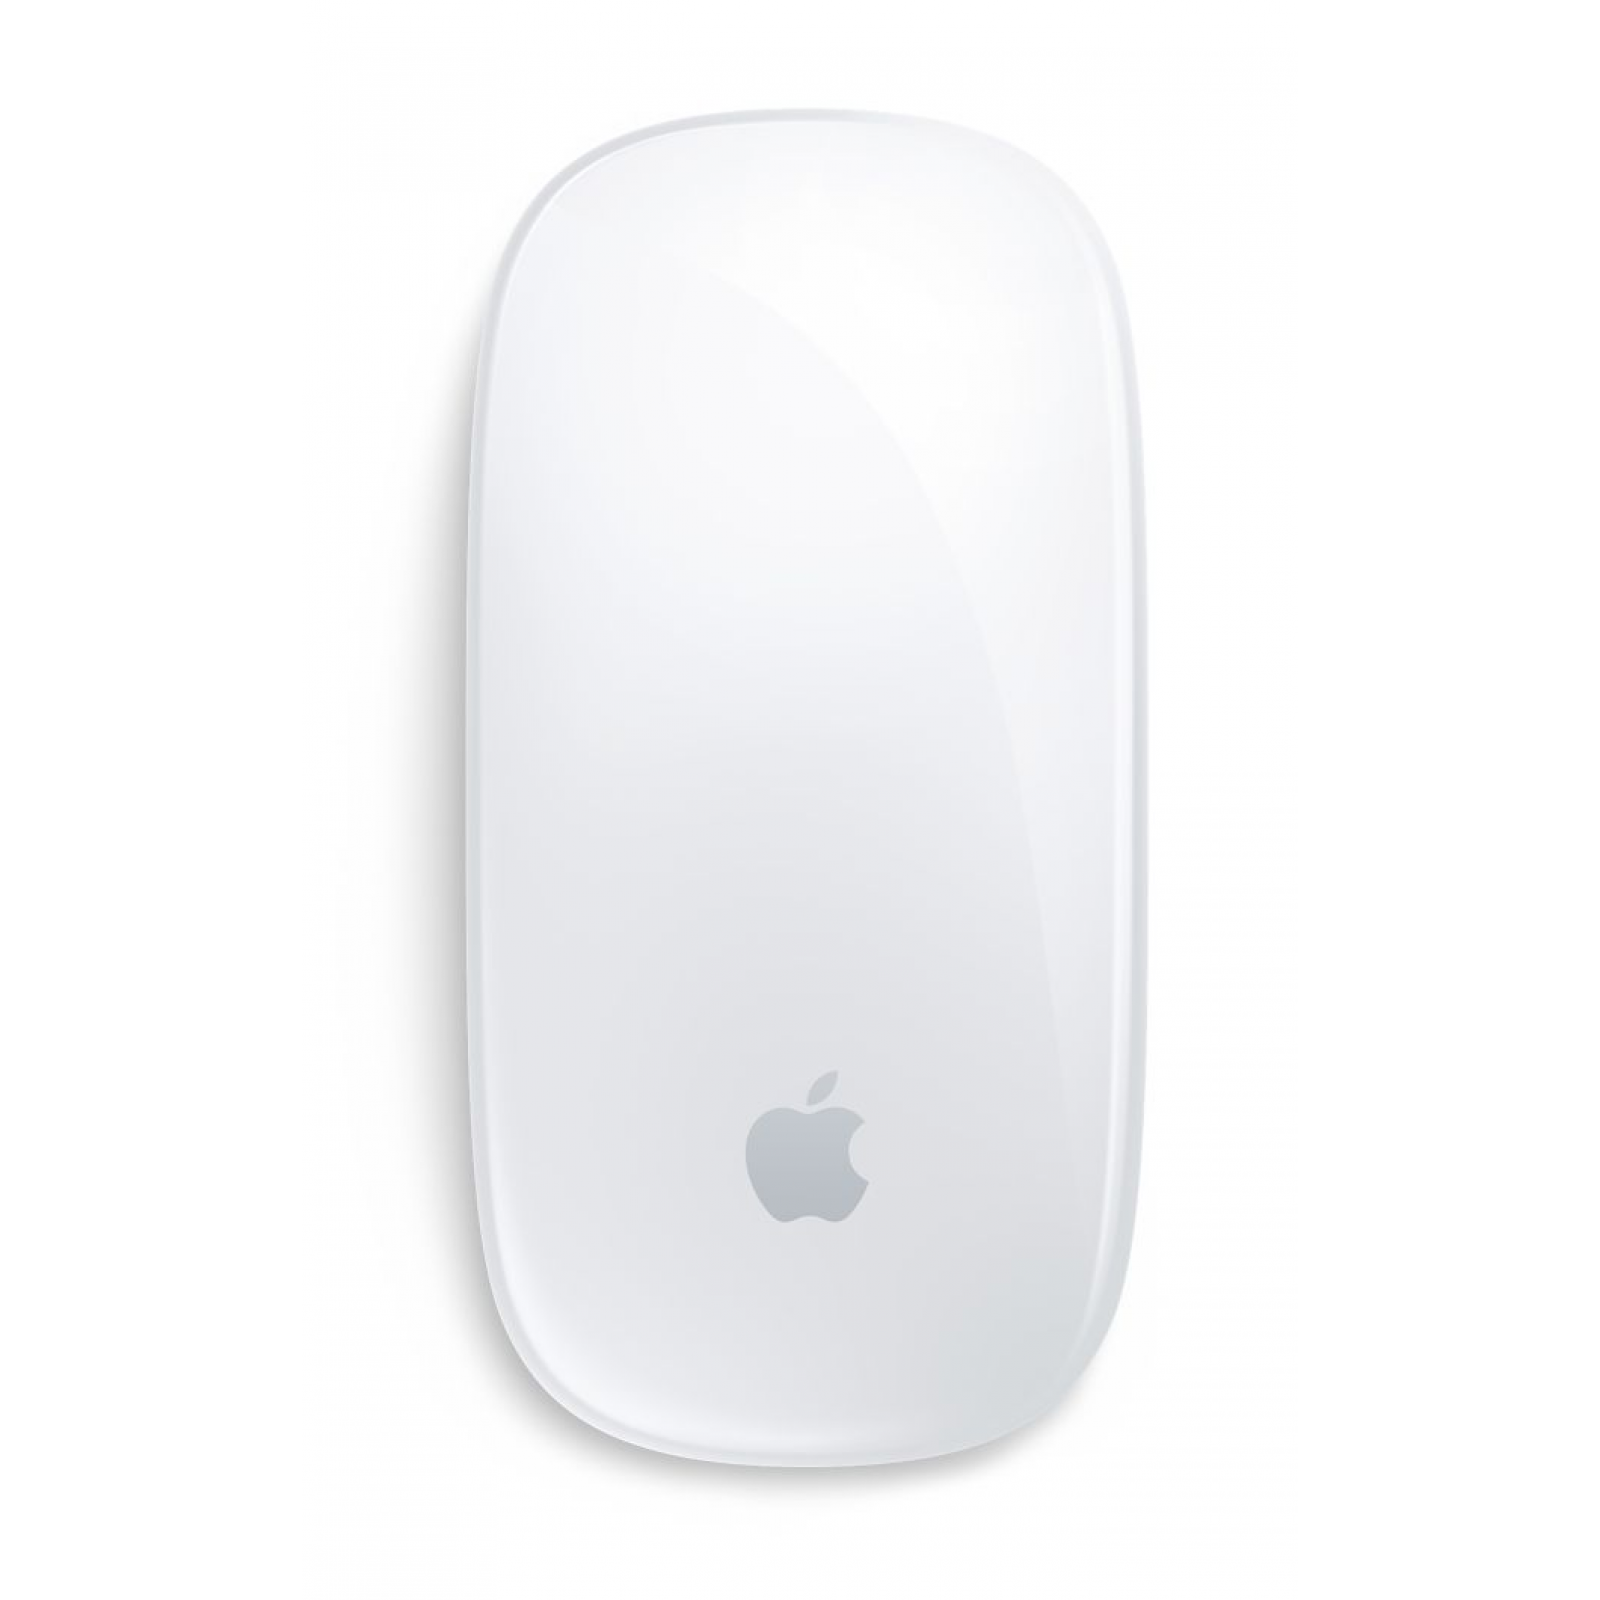 Imac mouse png. Apple magic